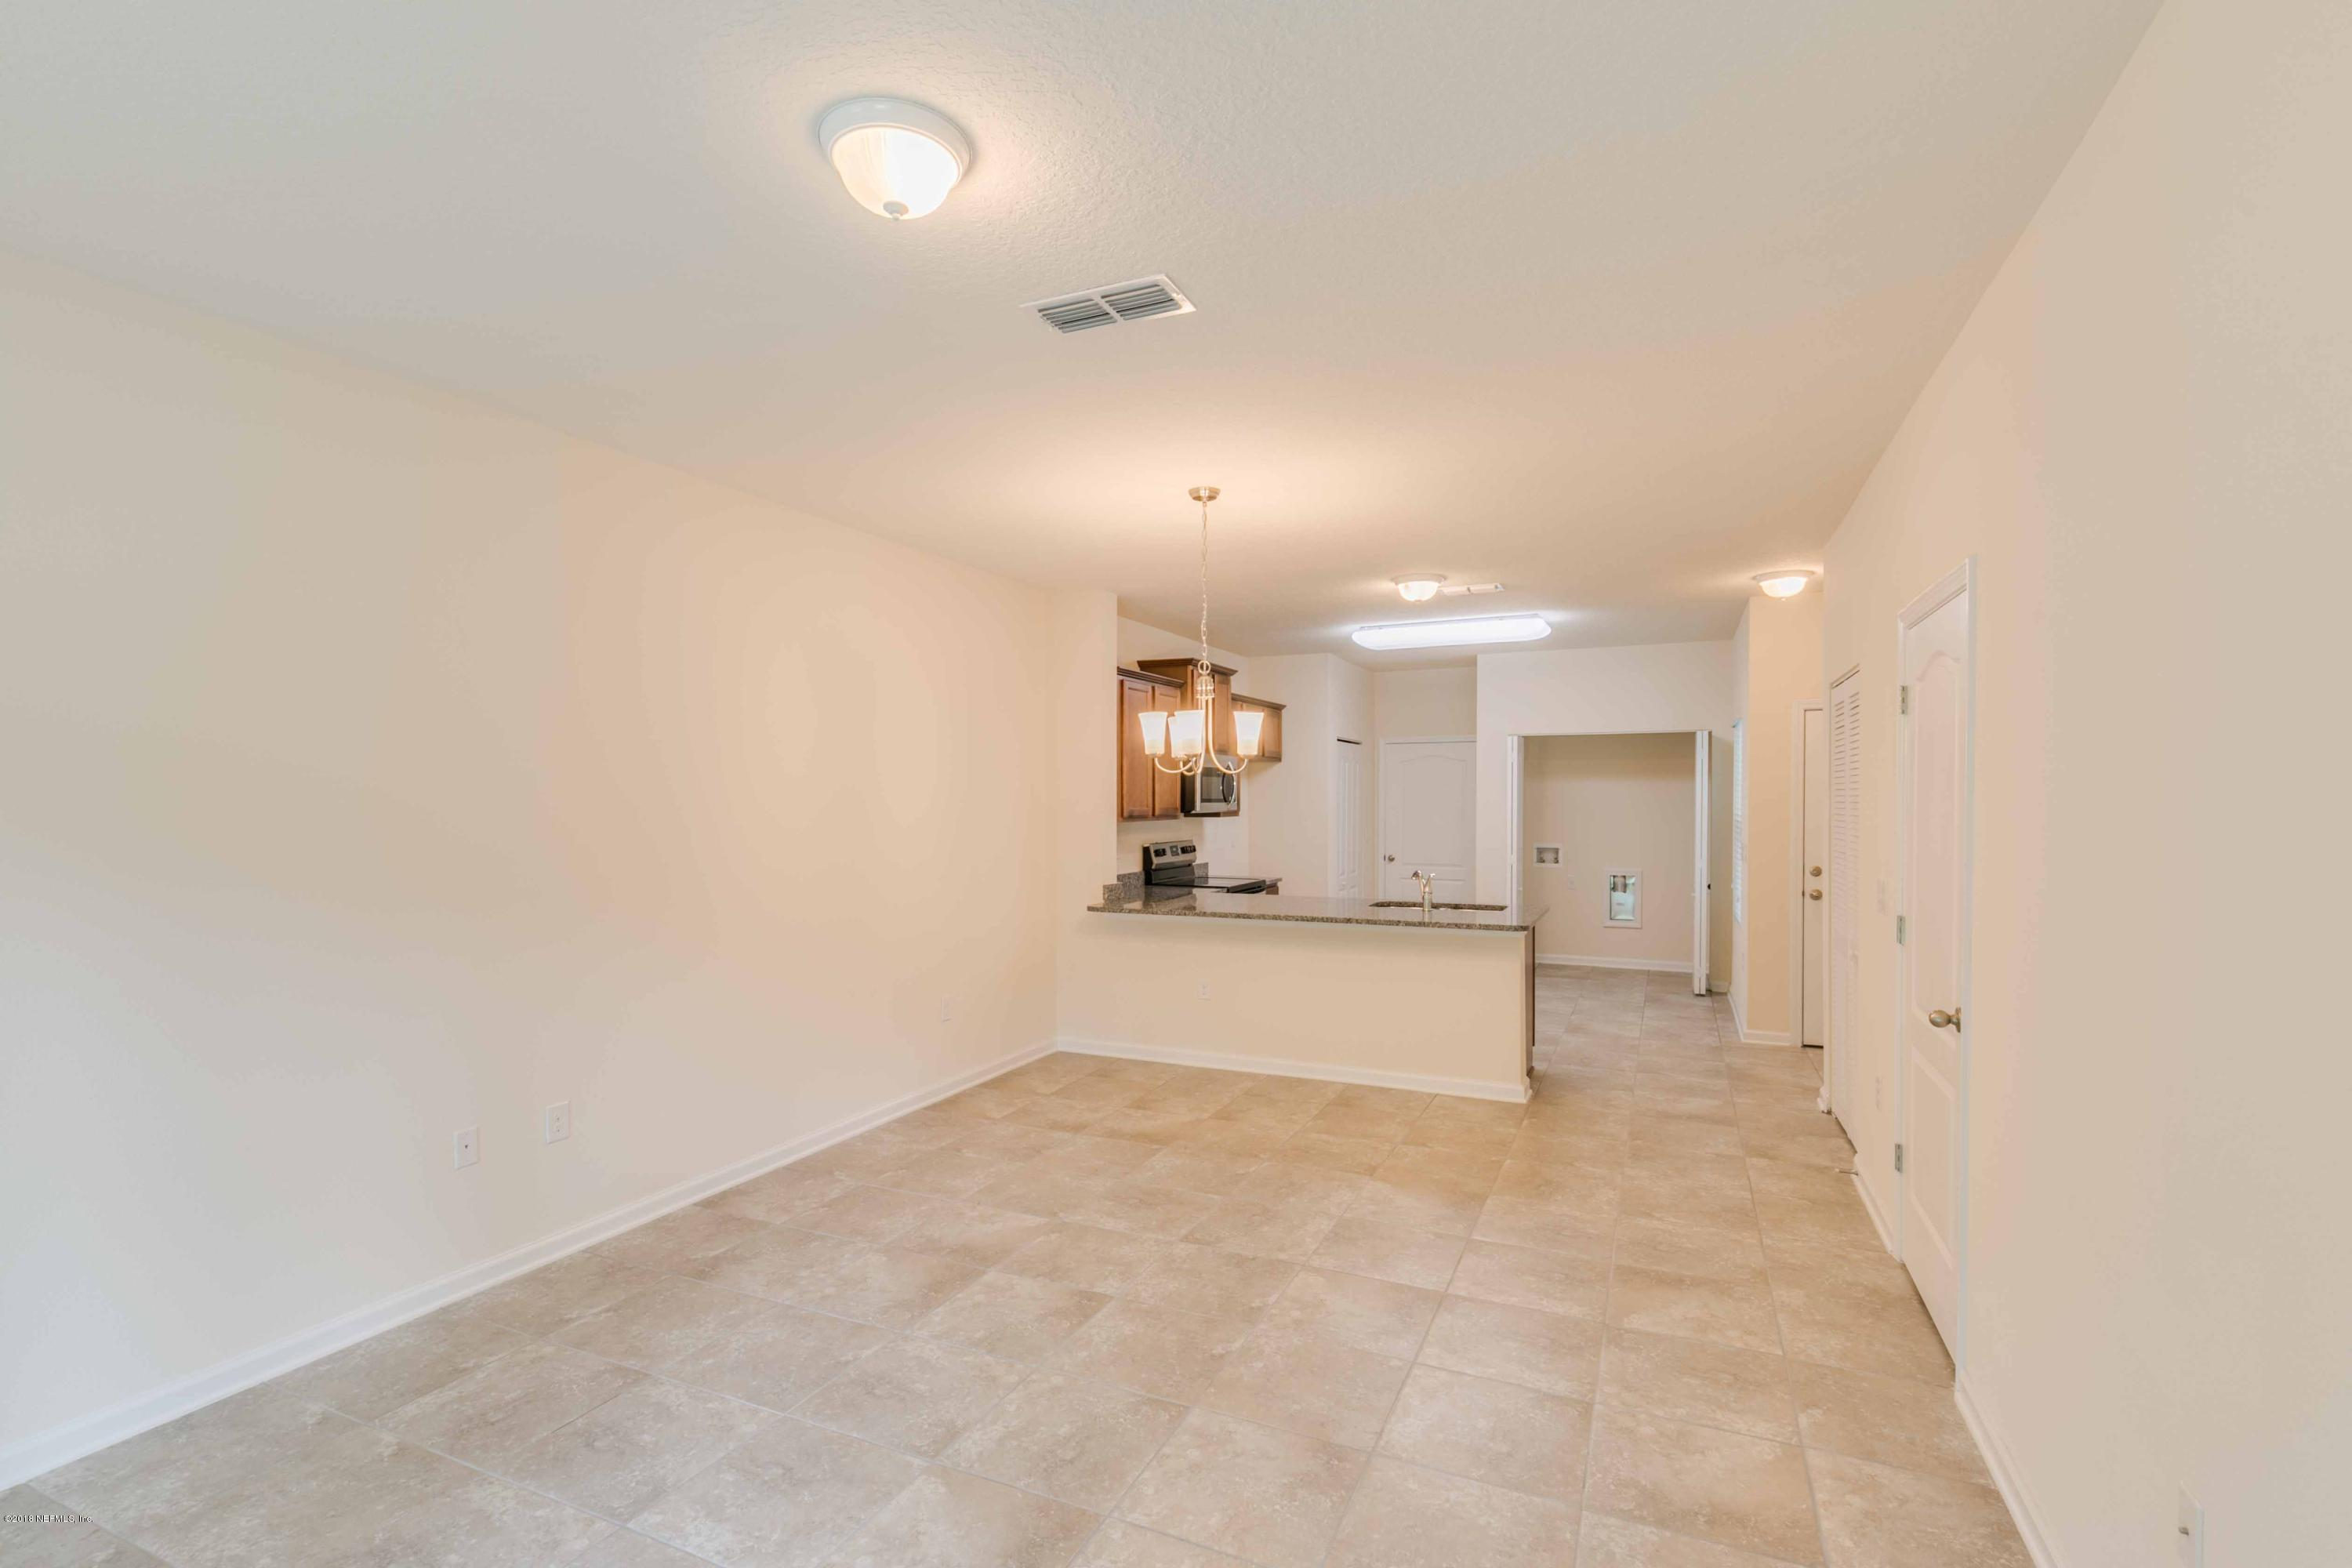 733 SERVIA, ST JOHNS, FLORIDA 32259, 2 Bedrooms Bedrooms, ,2 BathroomsBathrooms,Residential - townhome,For sale,SERVIA,974691